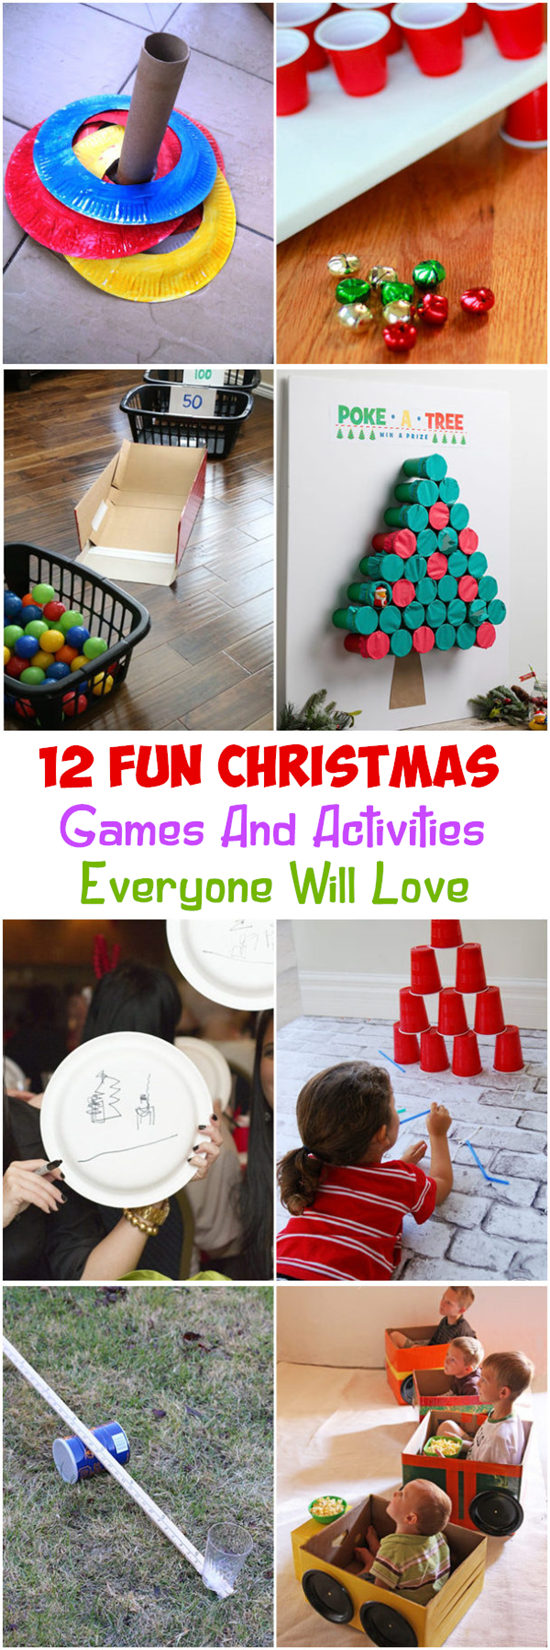 12 Fun Christmas Games And Activities Everyone Will Love